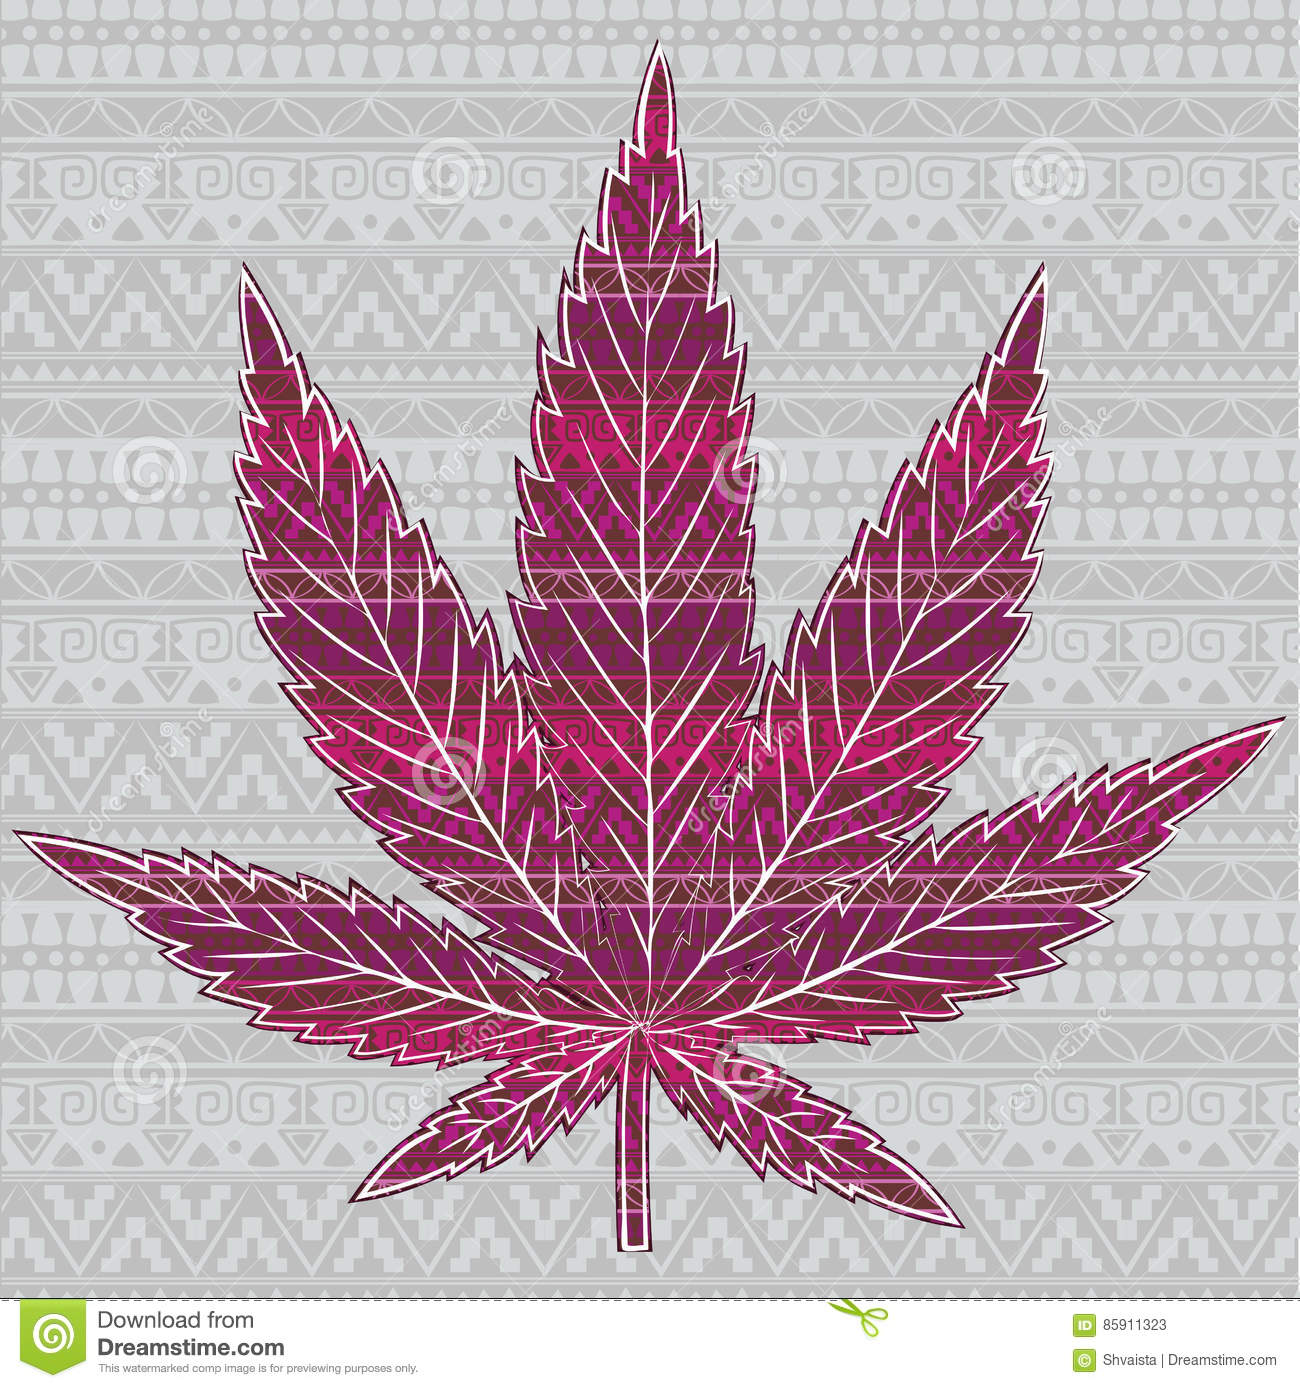 cannabis leaf with patterns